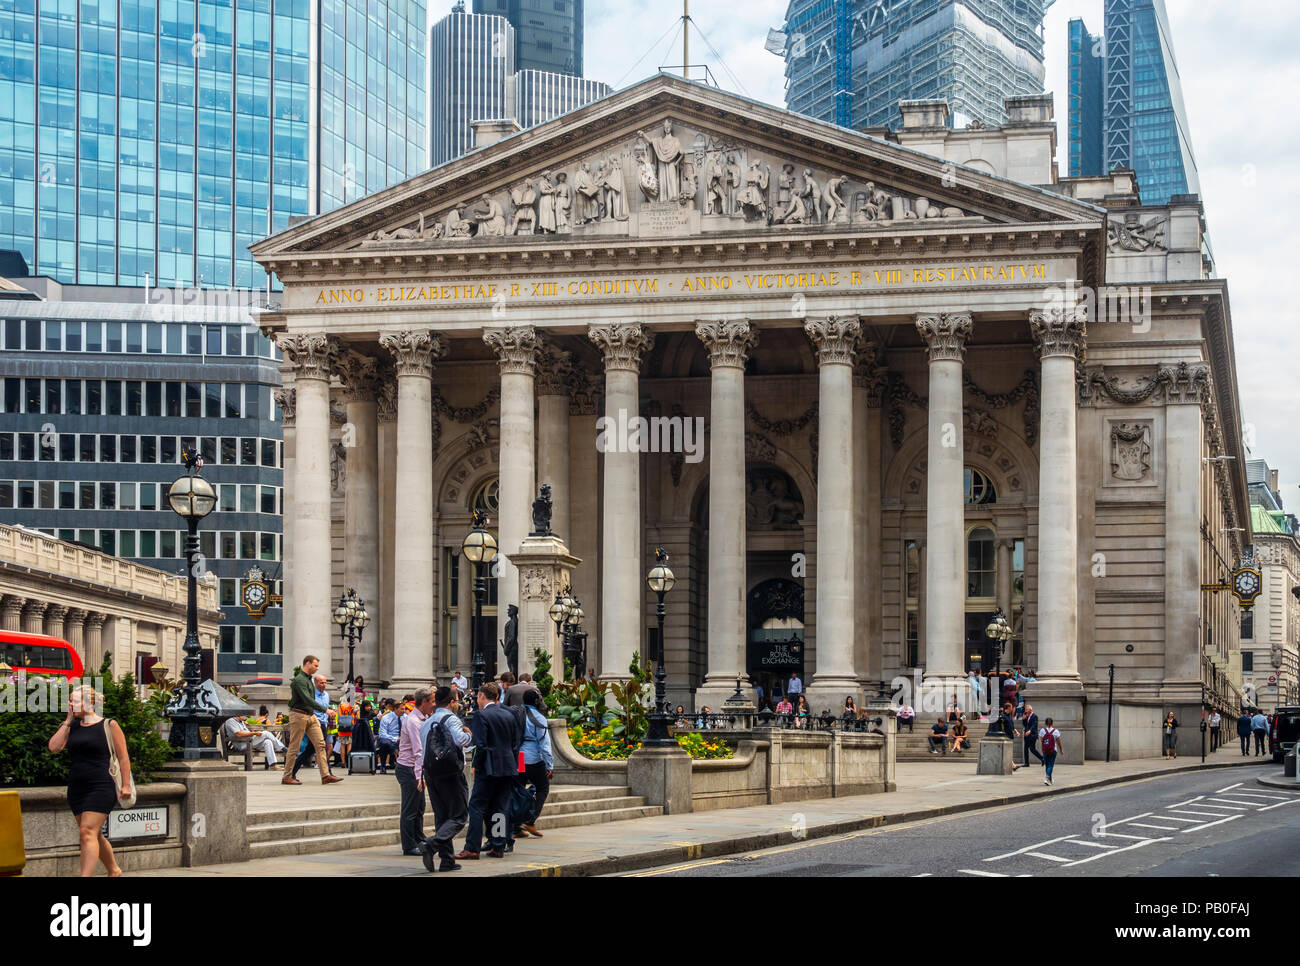 The Royal Exchange, Cornhill, City of London, nowadays a busy Coutyard Grand Cafe and upscale shopping centre. Pedestrians and customers - Stock Image